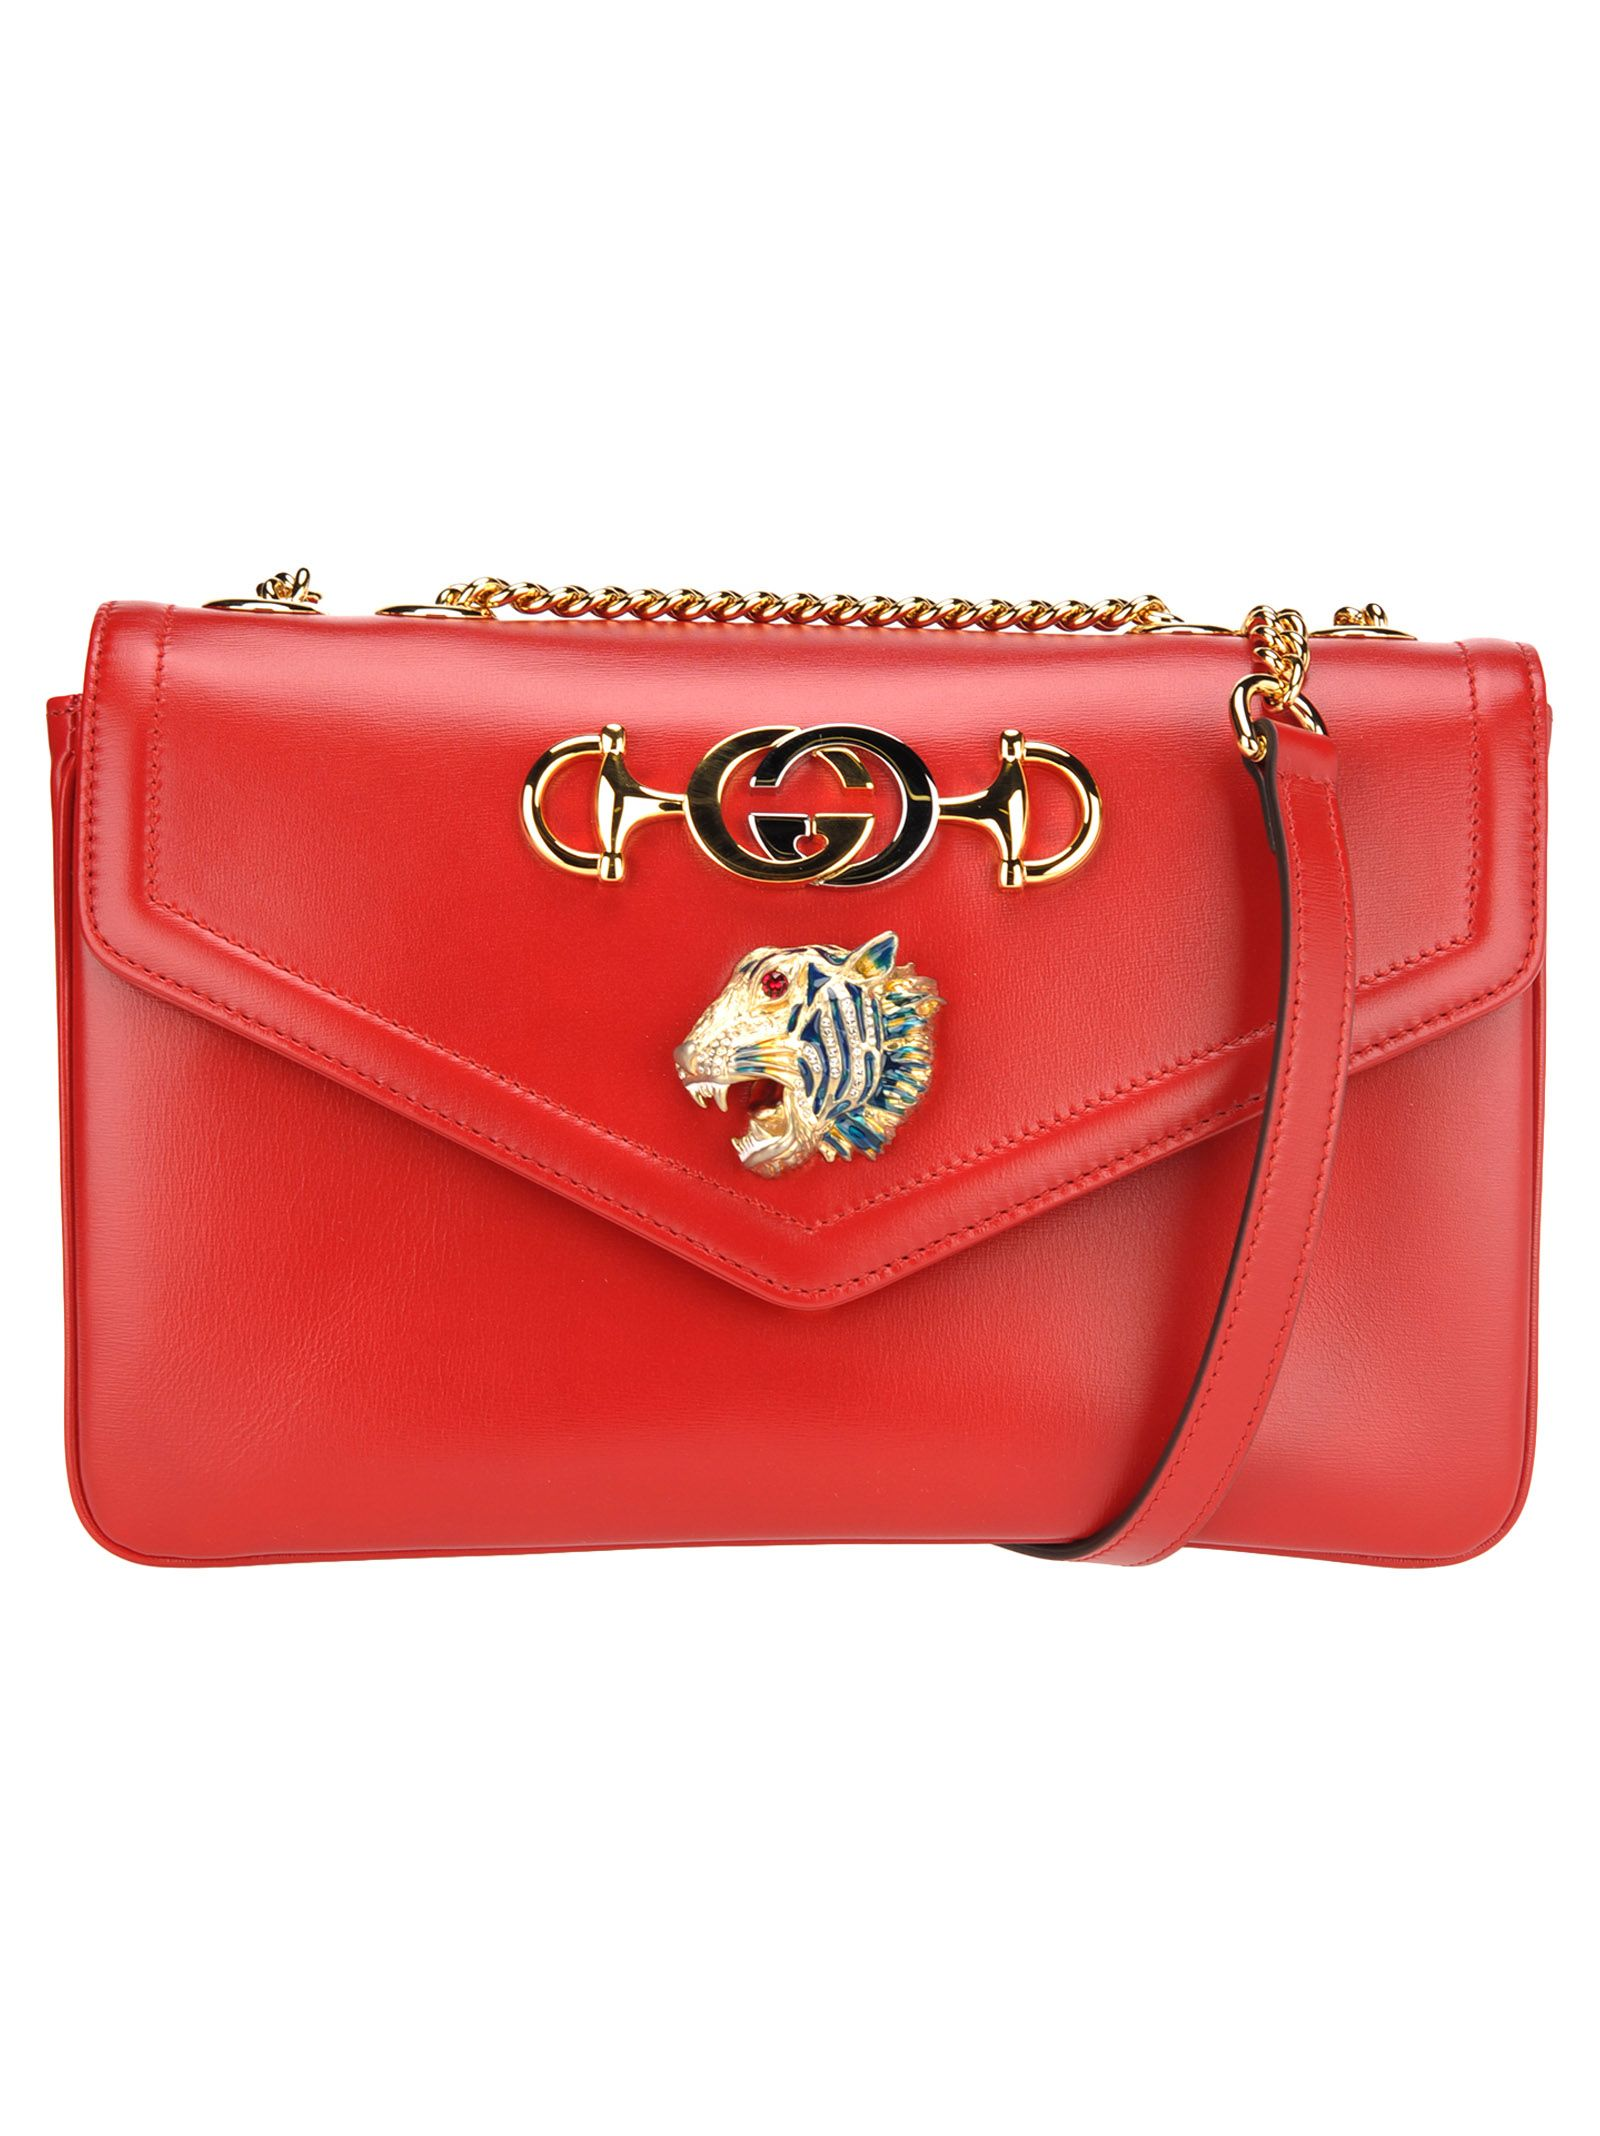 871ef9a71 Small Gucci Bag Red